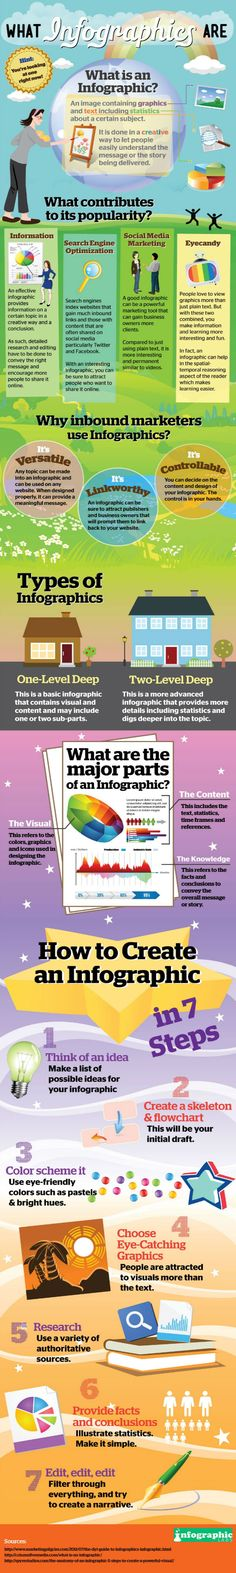 The What, Why & How of Infographic Creation [#Infographic]